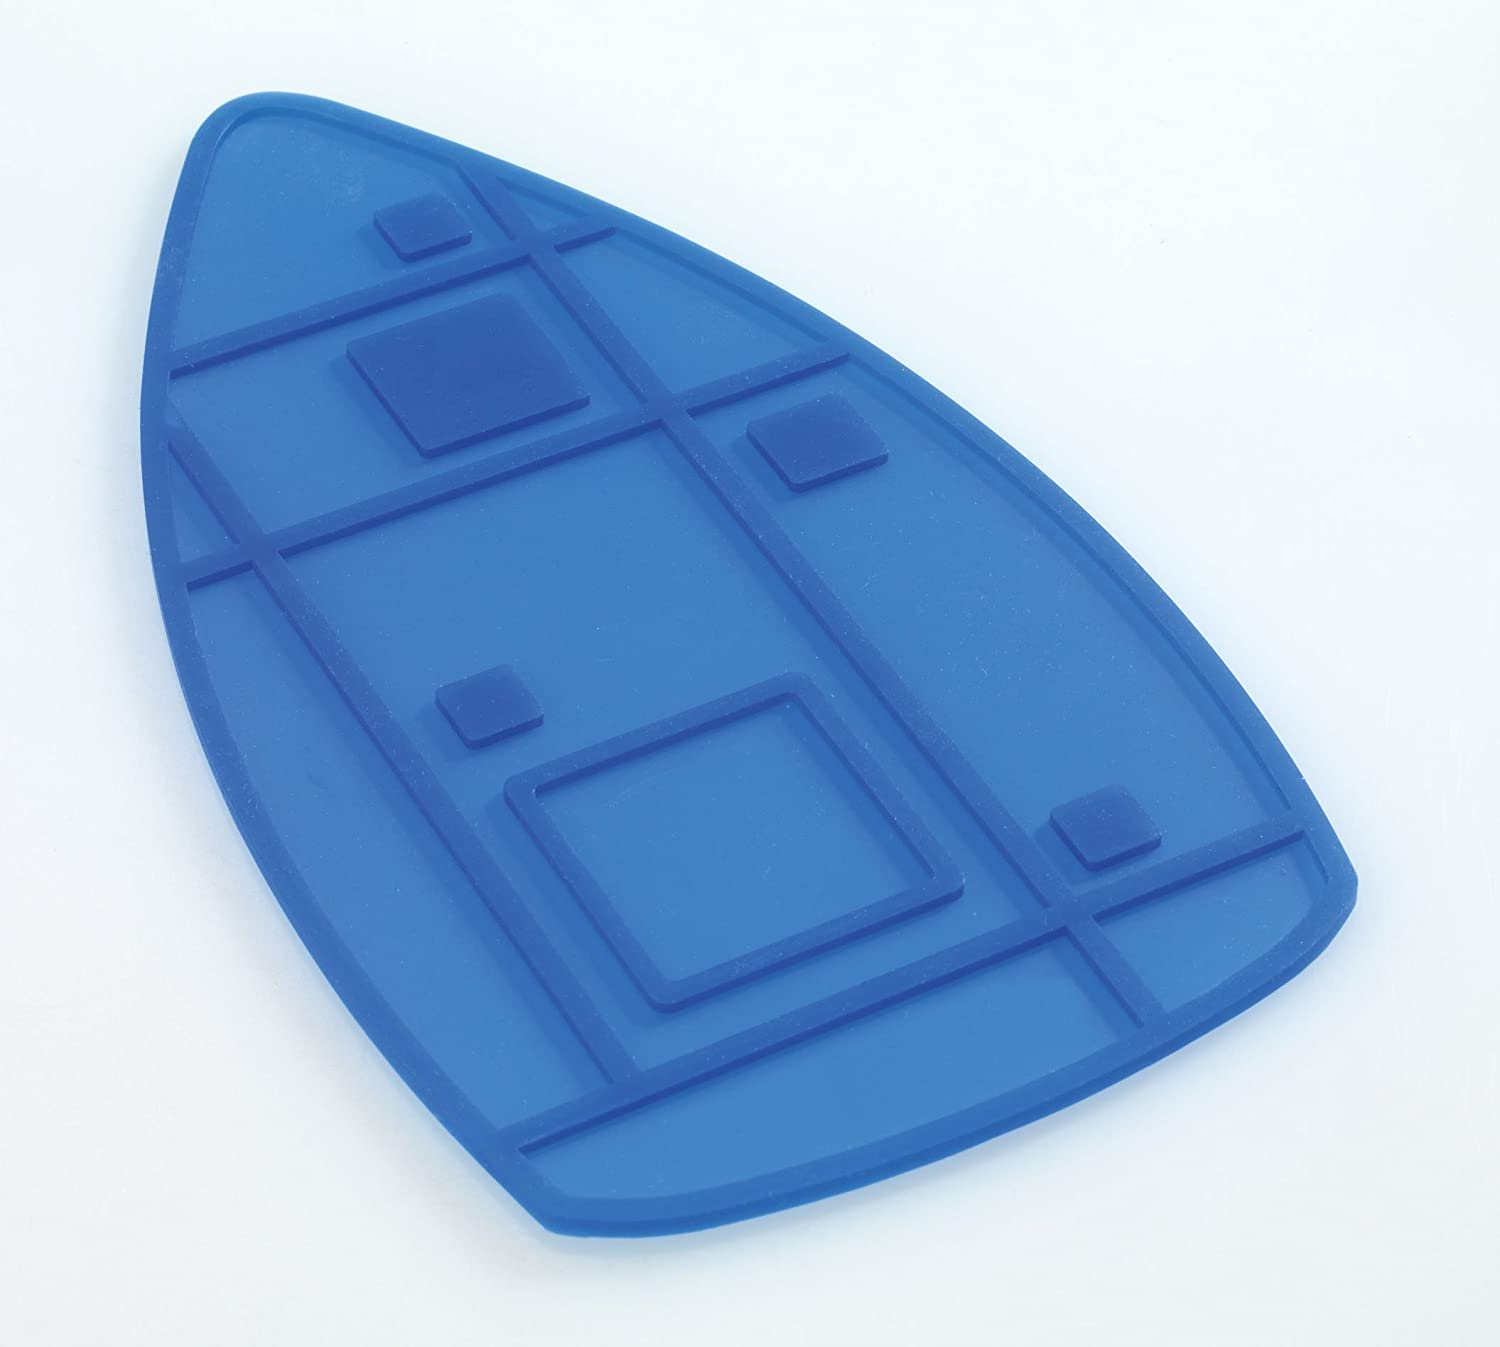 Wenko Silicon Iron Rest Heat Resistant up to 240 Degrees Centigrade 23.5 x 13 cm Blue 1940002100